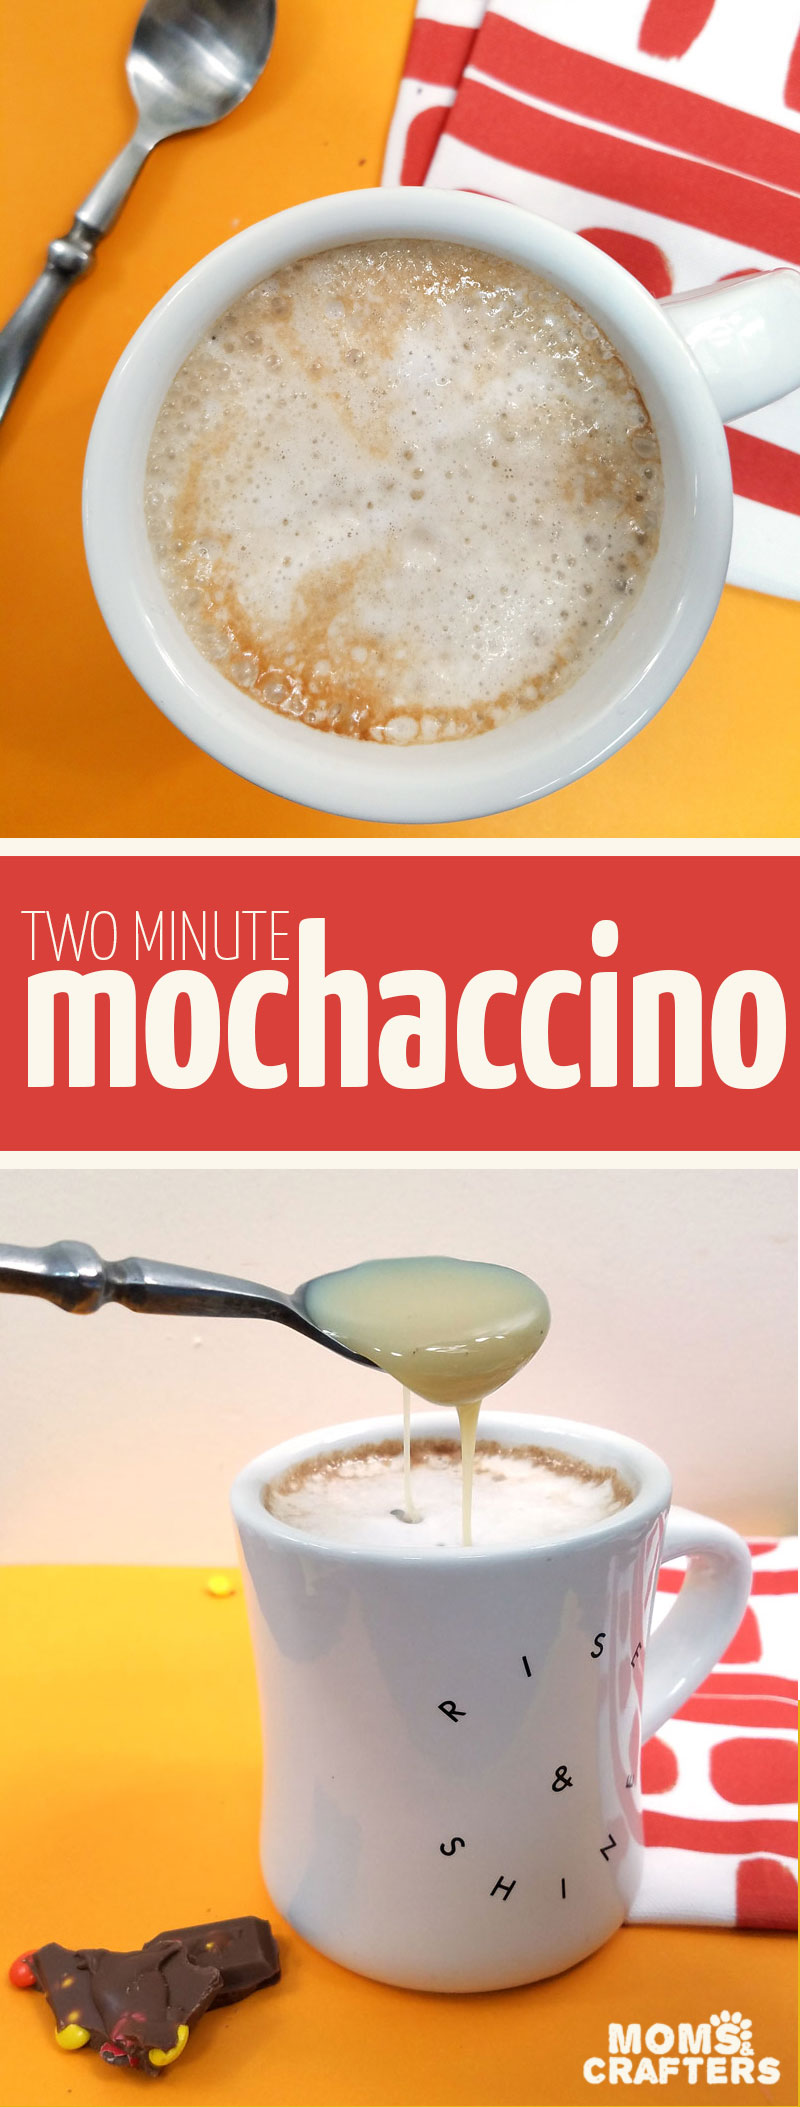 Whether you're looking for a heavenly Mother's Day breakfast idea, or just the occasional calorie splurge, this two minute mochaccino recipe is a delicious mochaccino latte and one of my favorite coffee recipes ever - caffiene included! #coffee #latte #momsandcrafters